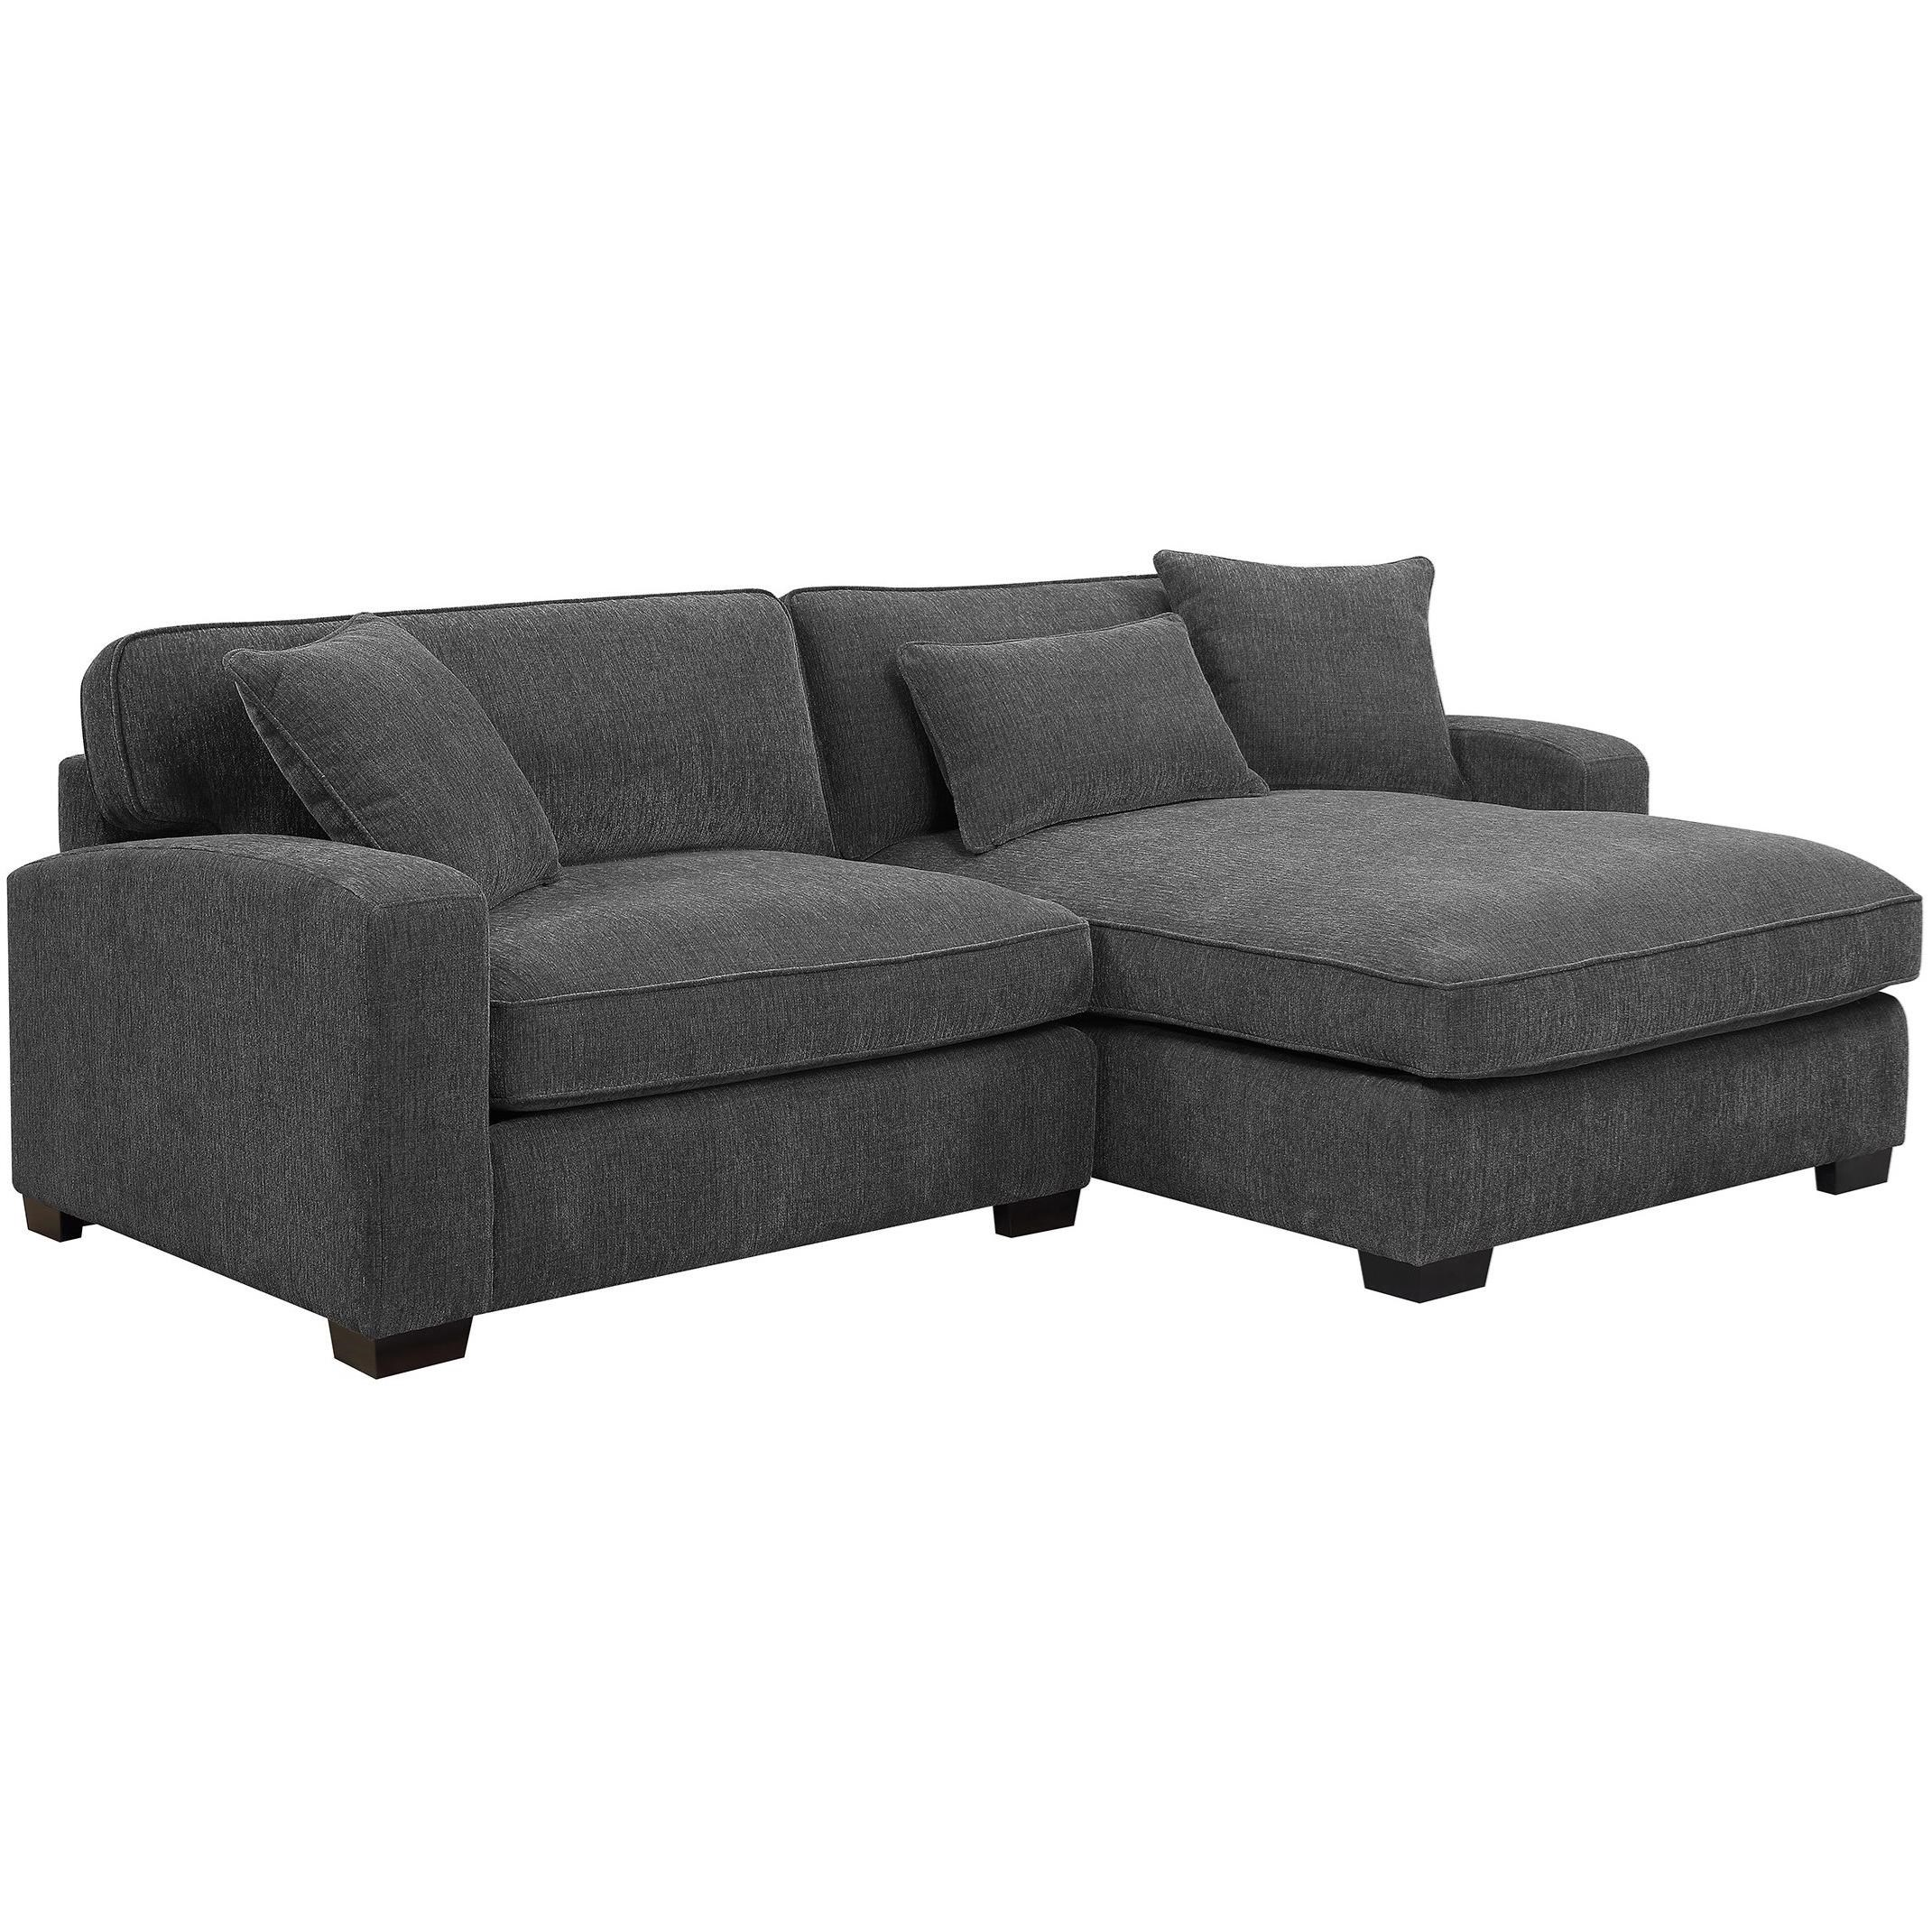 Emerald Repose Casual Two Piece Sectional Sofa With Raf